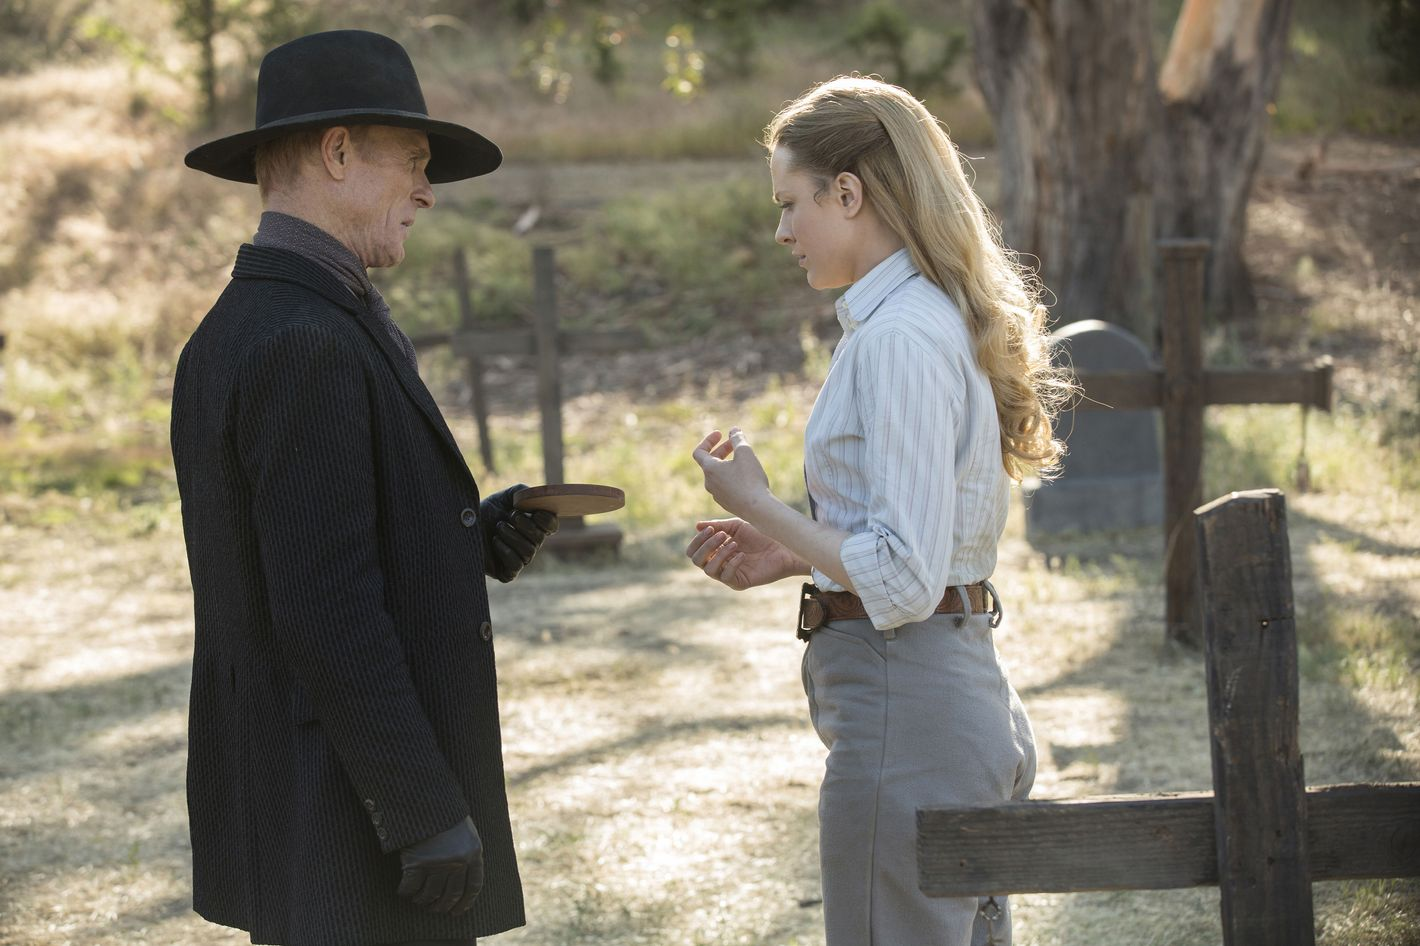 How an America's Next Top Model Contestant Unwittingly Ended Up on Westworld